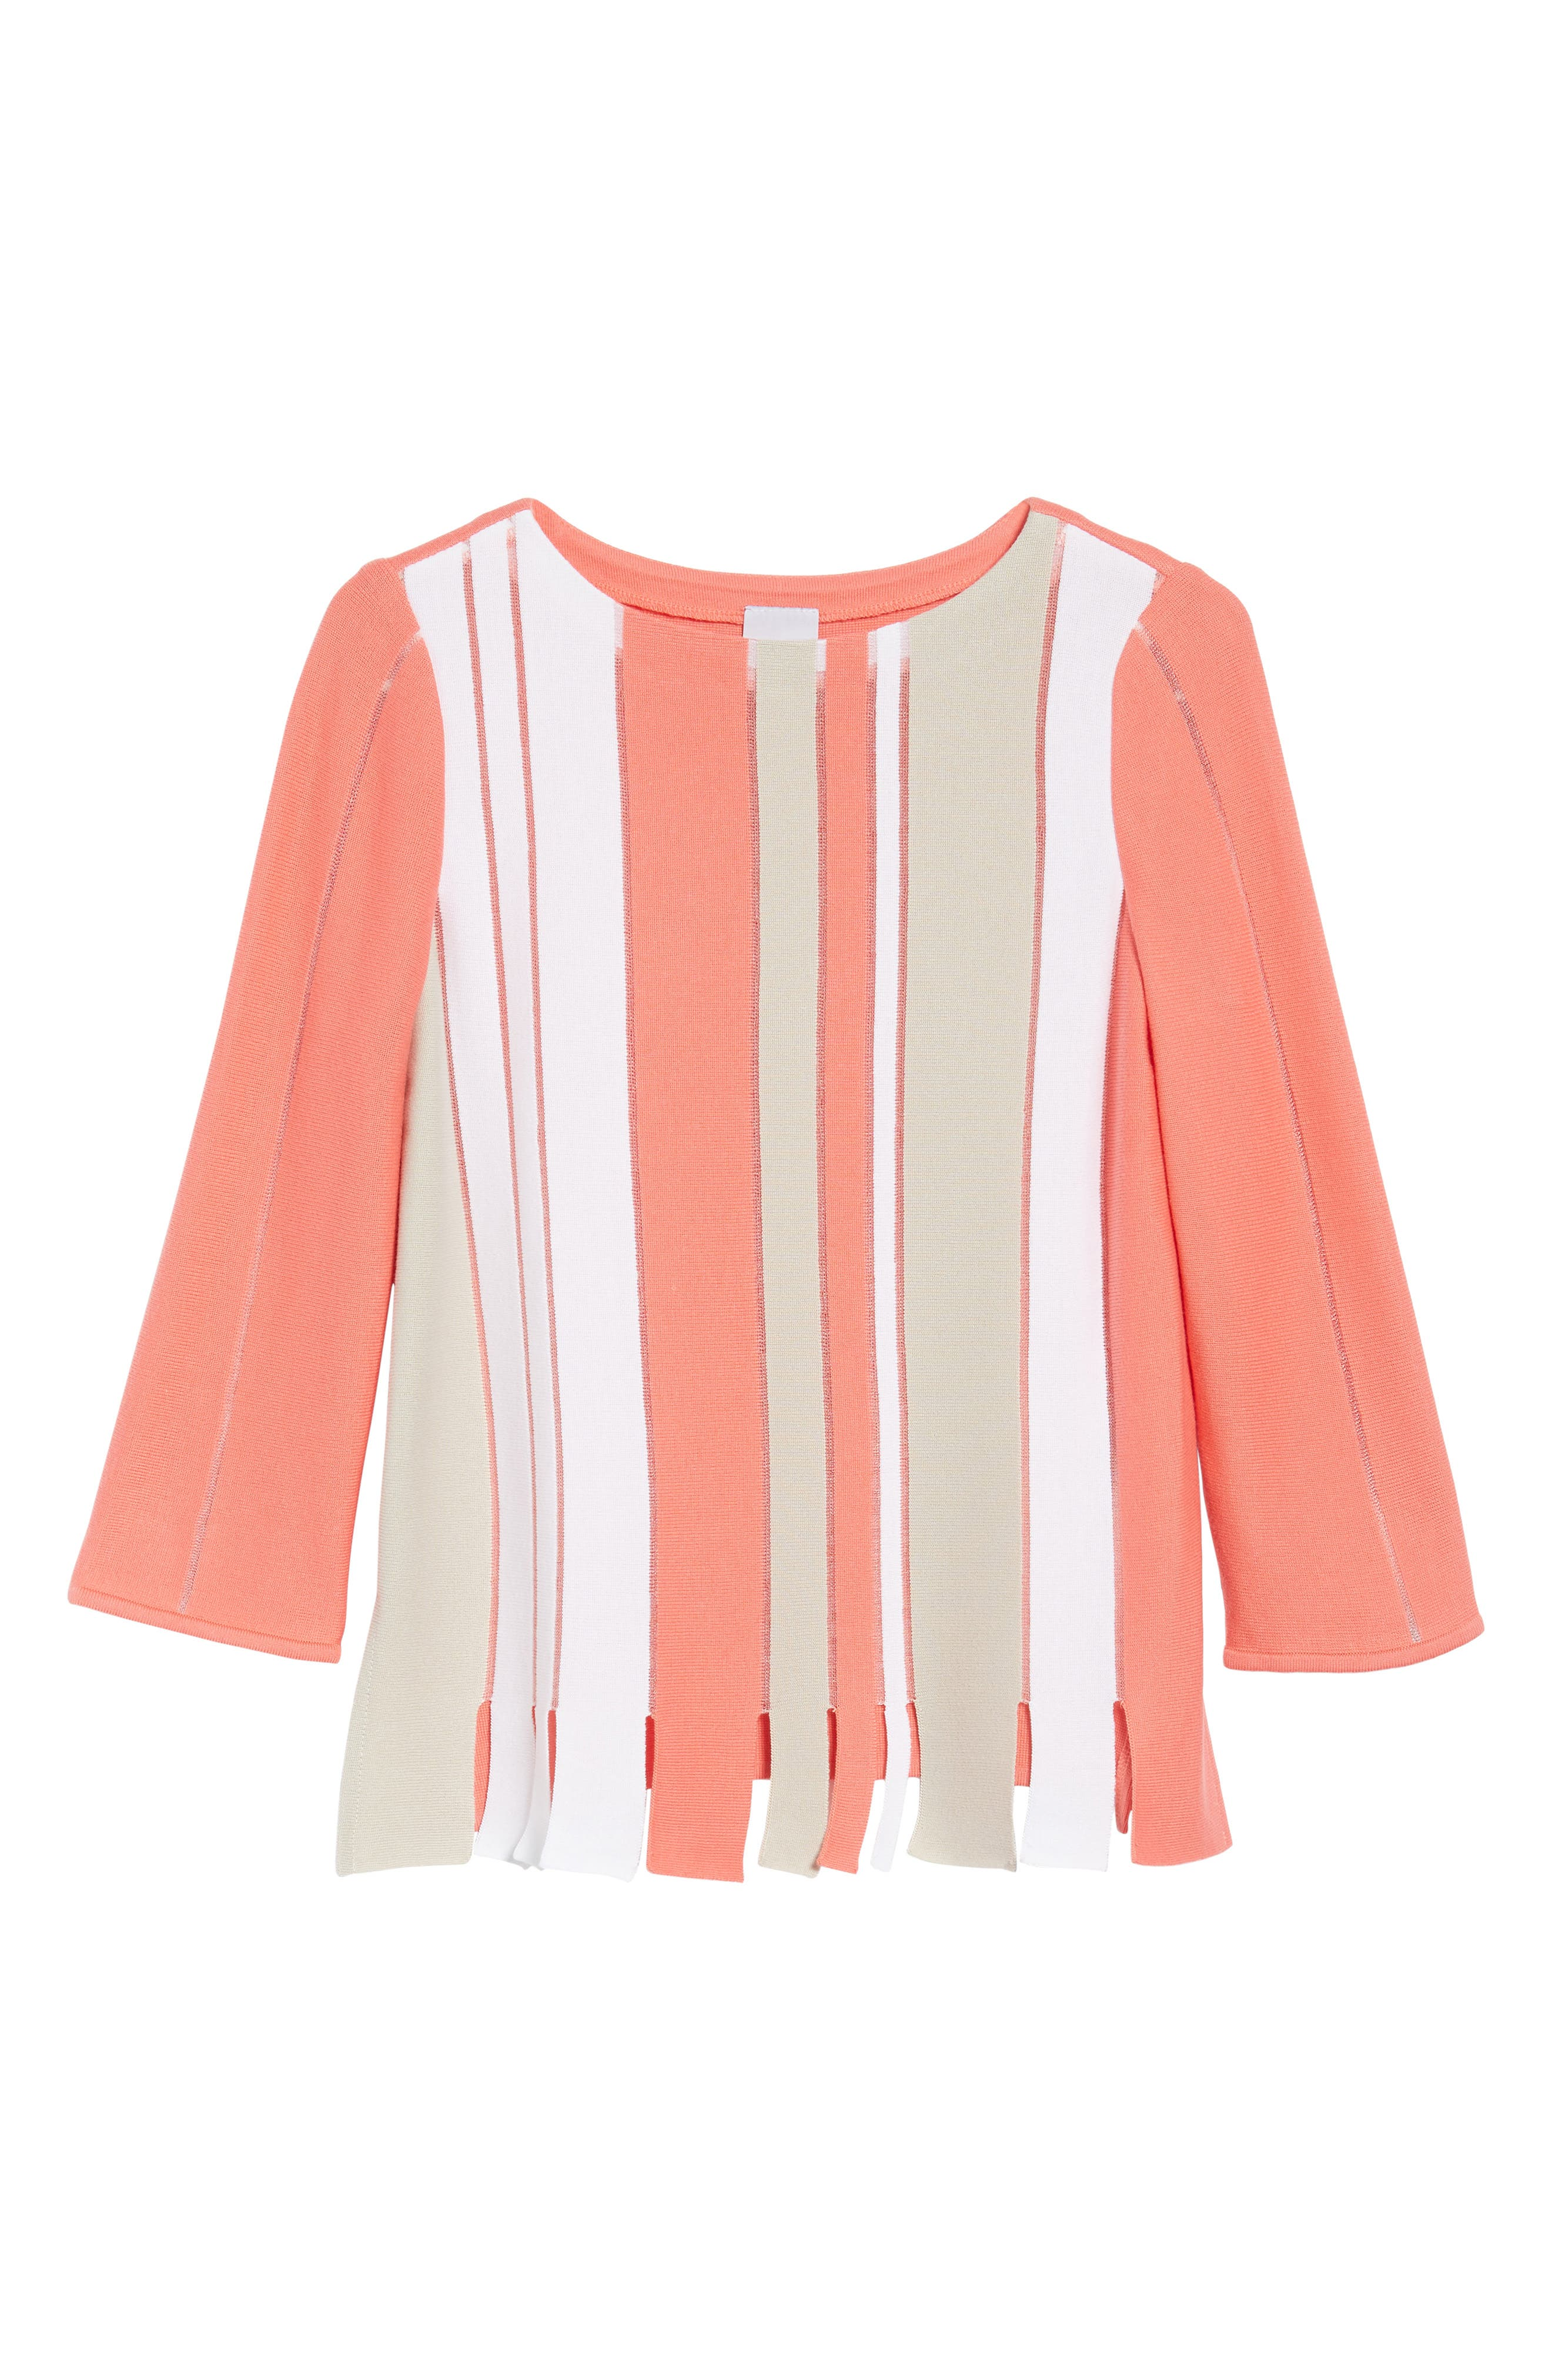 Stripe Cotton Blend Sweater,                             Alternate thumbnail 6, color,                             Daylily/ Almond Beige/ White